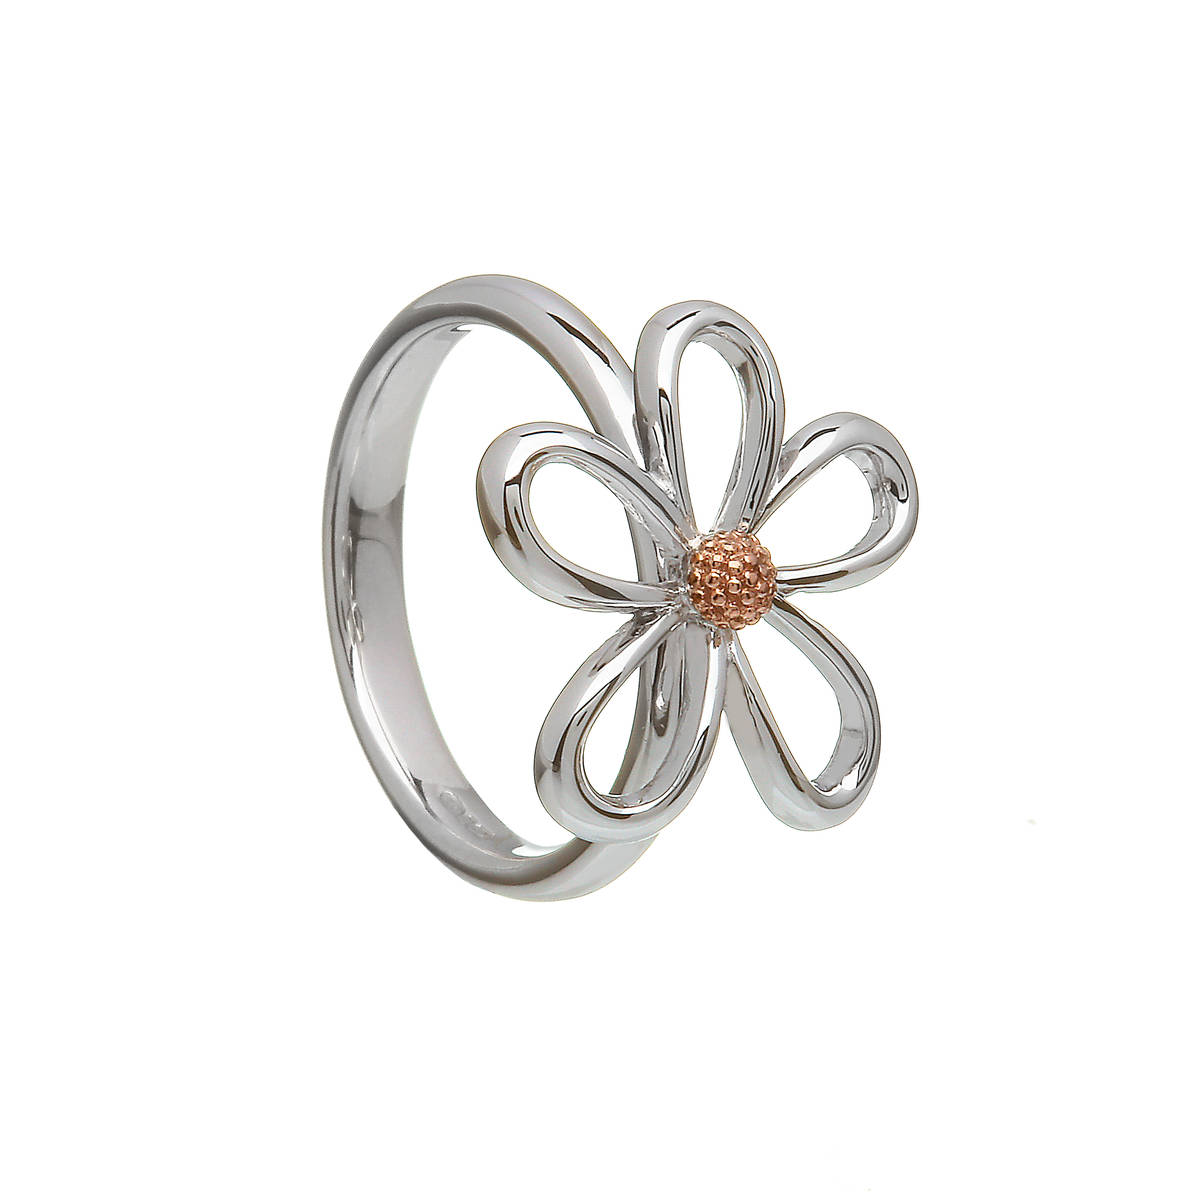 silver and rare Irish rose gold open petal ring with gold centre.